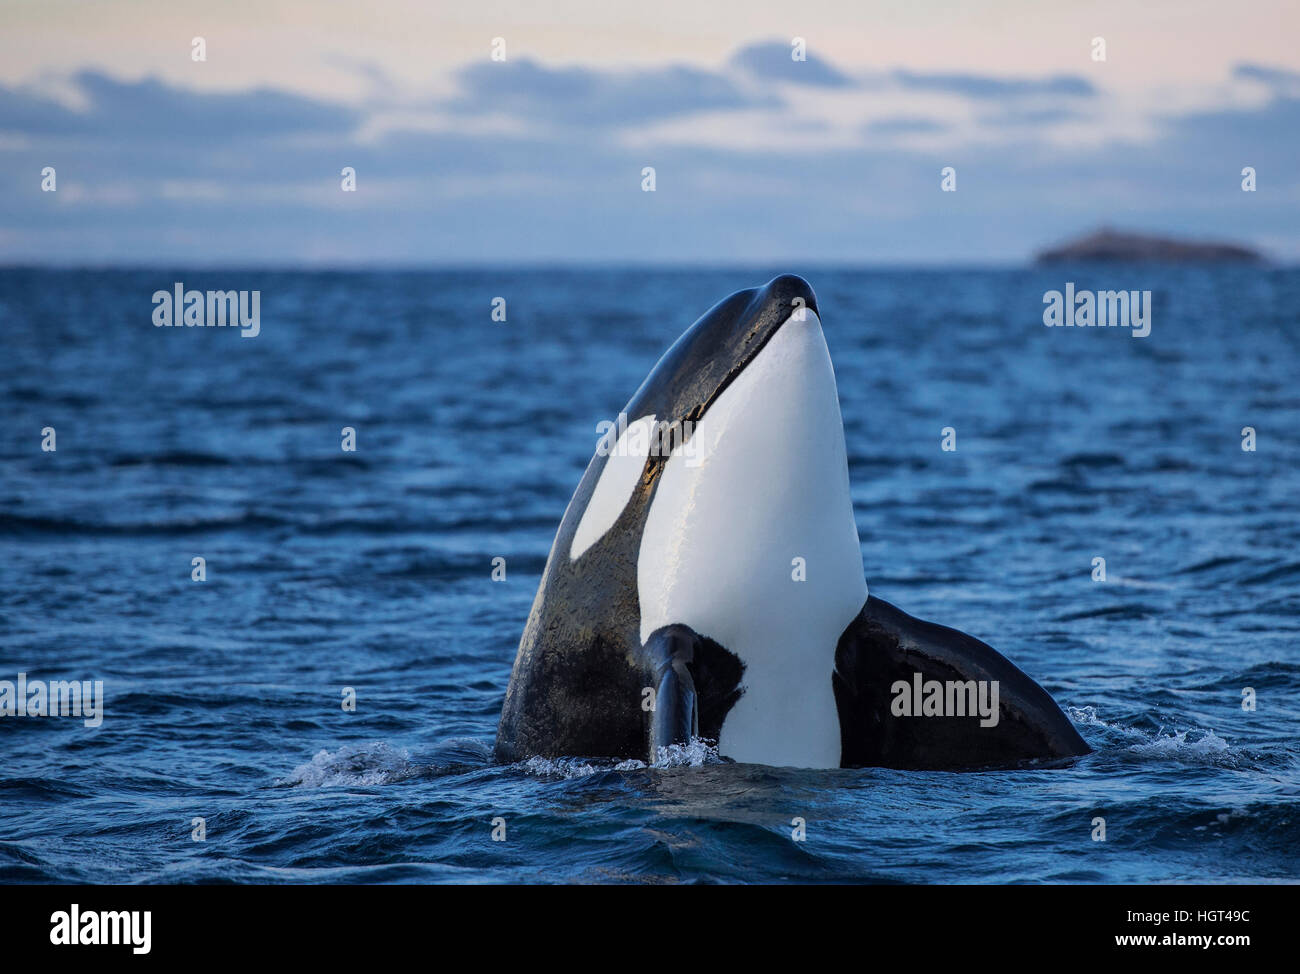 Orca or killer whale (Orcinus orca), spyhopping, Kaldfjorden, Norway - Stock Image